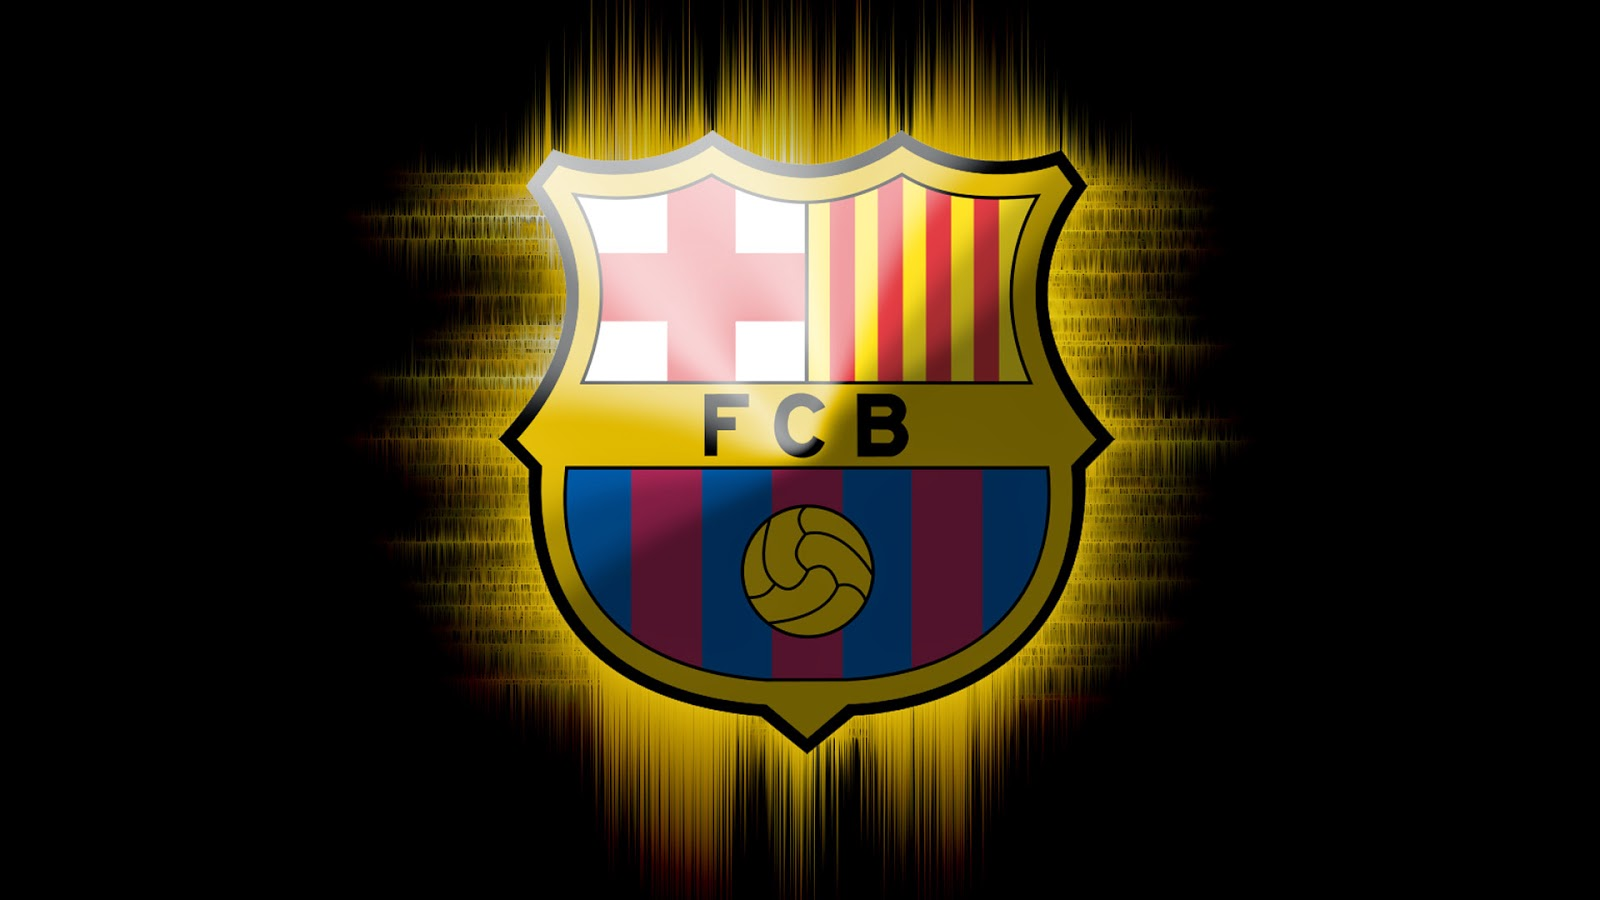 Free download Barcelona Logo Wallpaper 2014 HD Wallpaper.